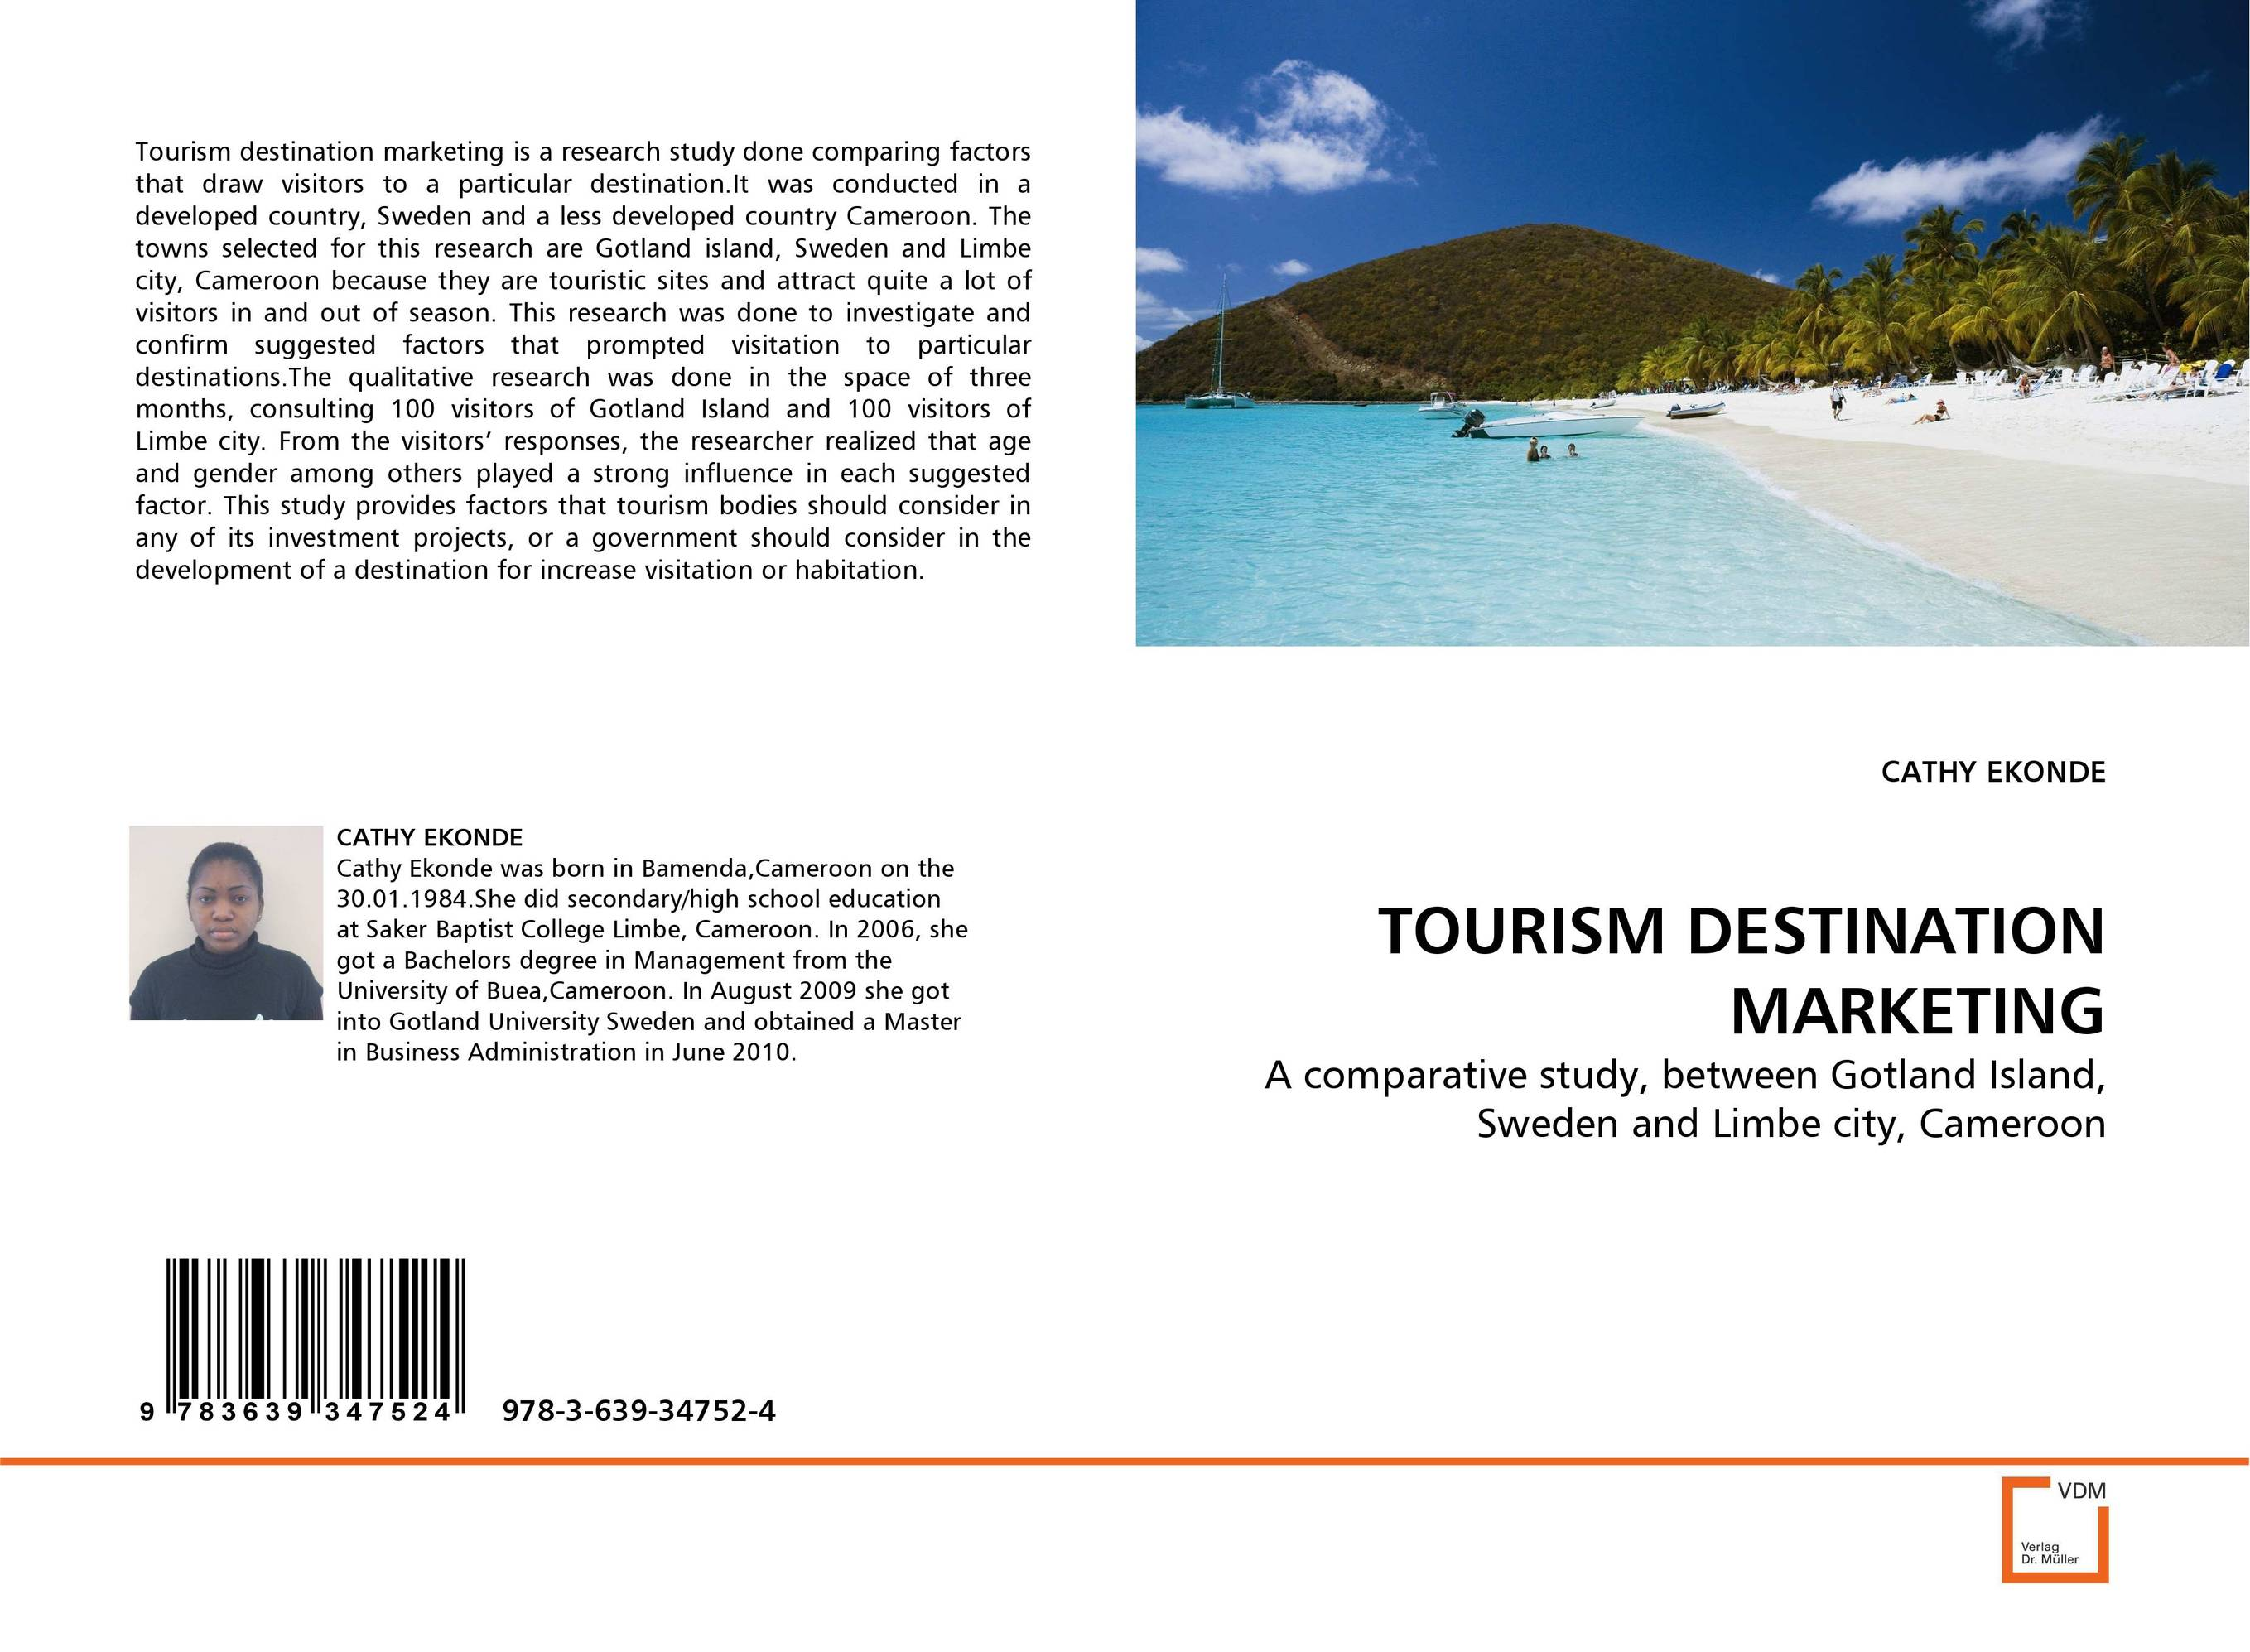 TOURISM DESTINATION MARKETING